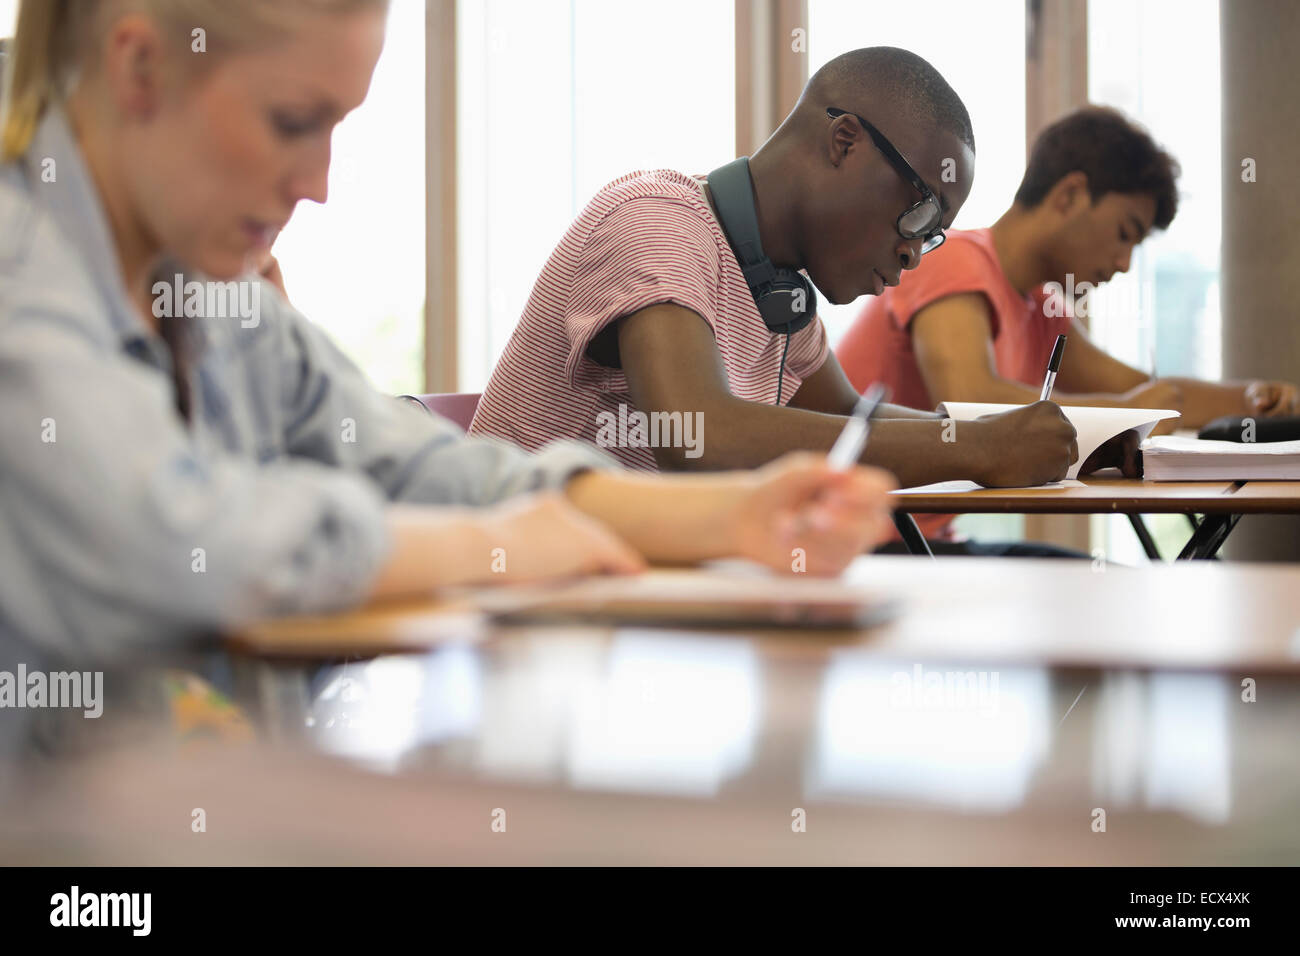 View of students sitting at desks during test in classroom - Stock Image